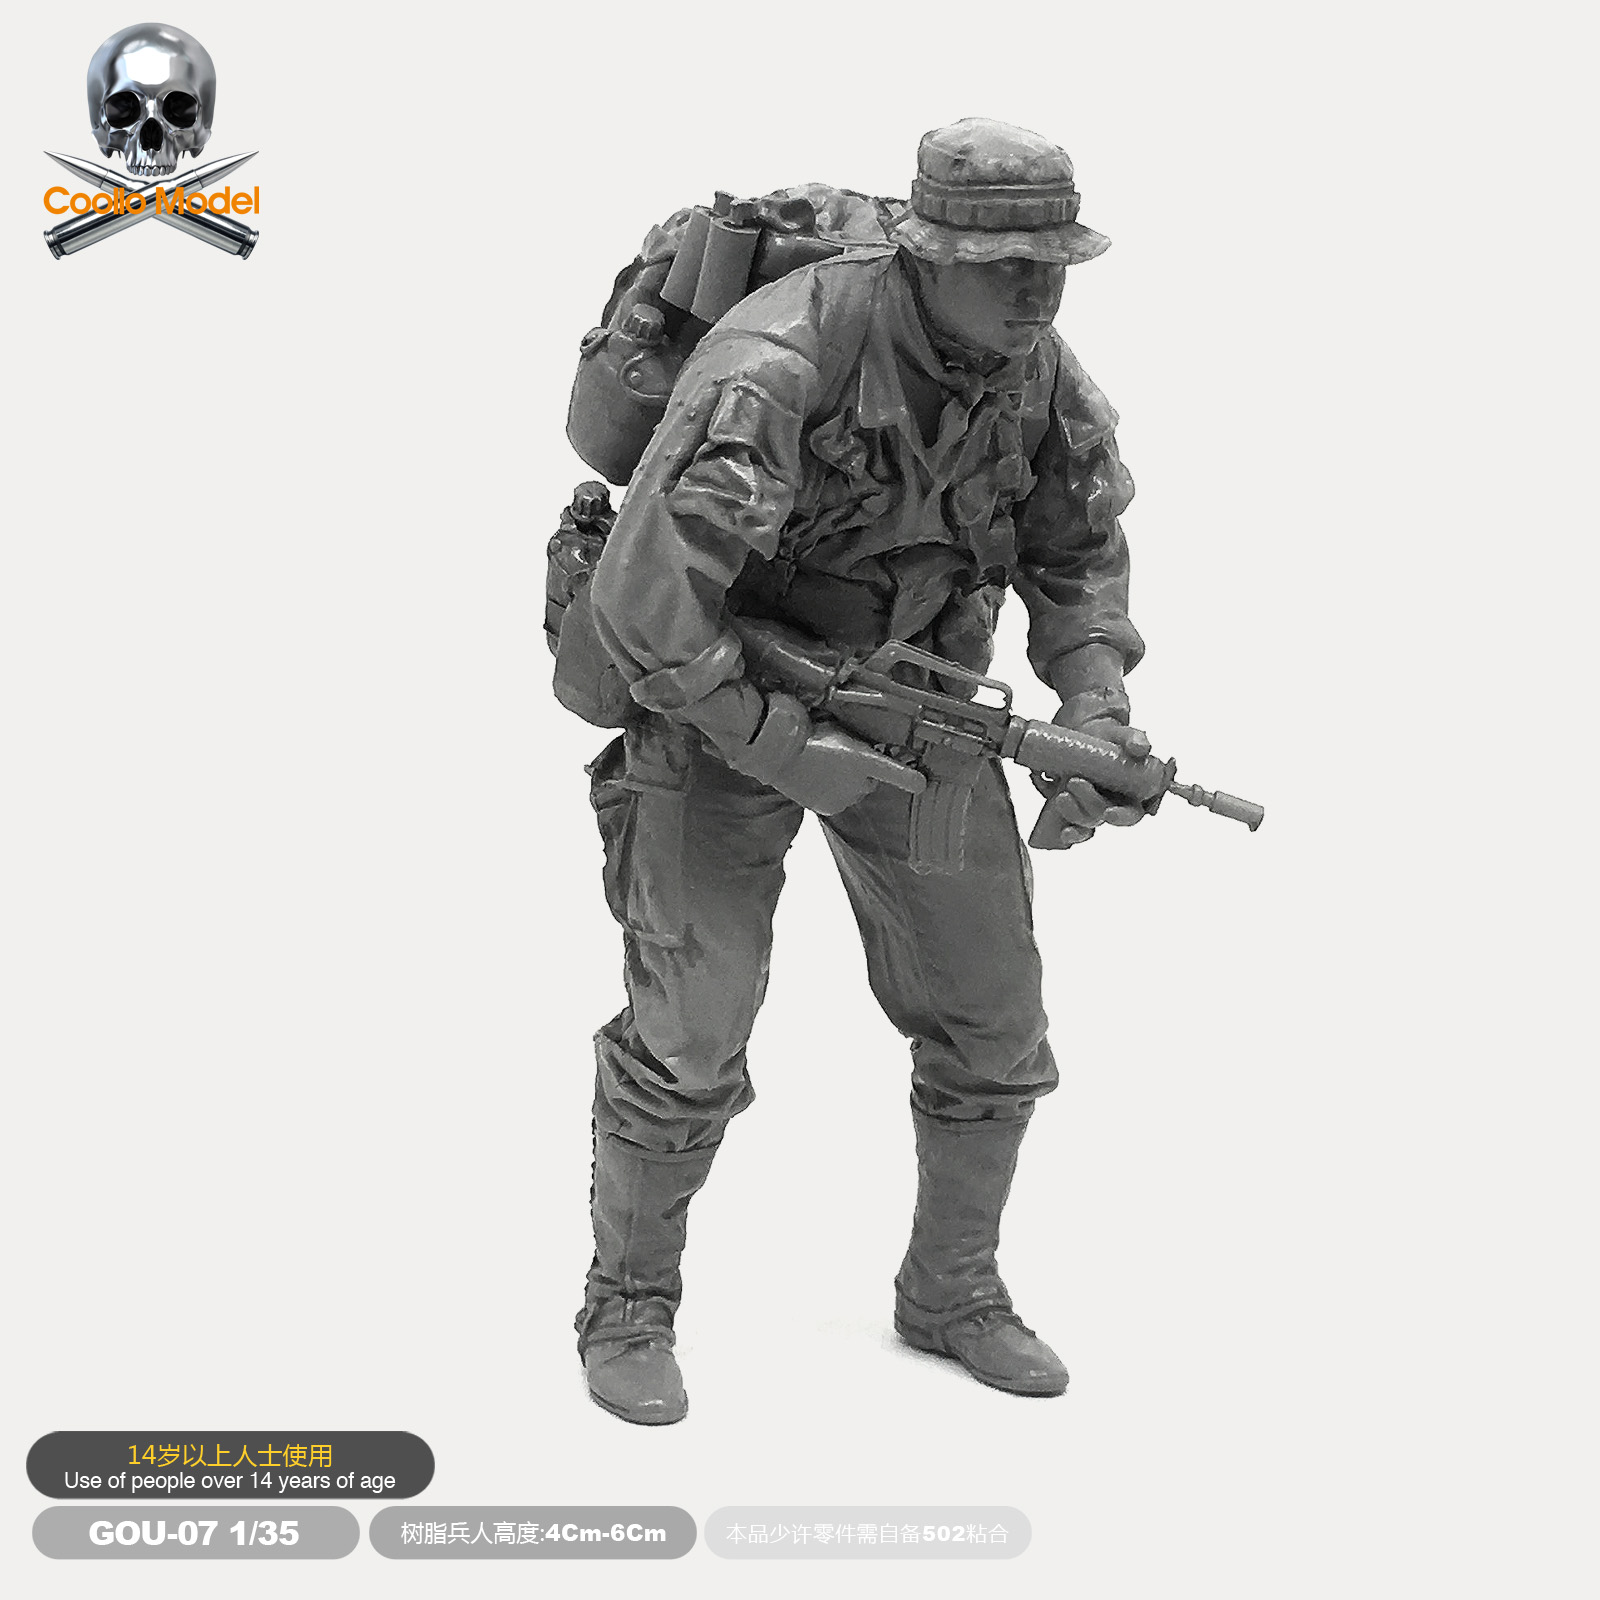 1/35 Resin Troops U.s. Delta Special Forces Gou-07 Diversified In Packaging